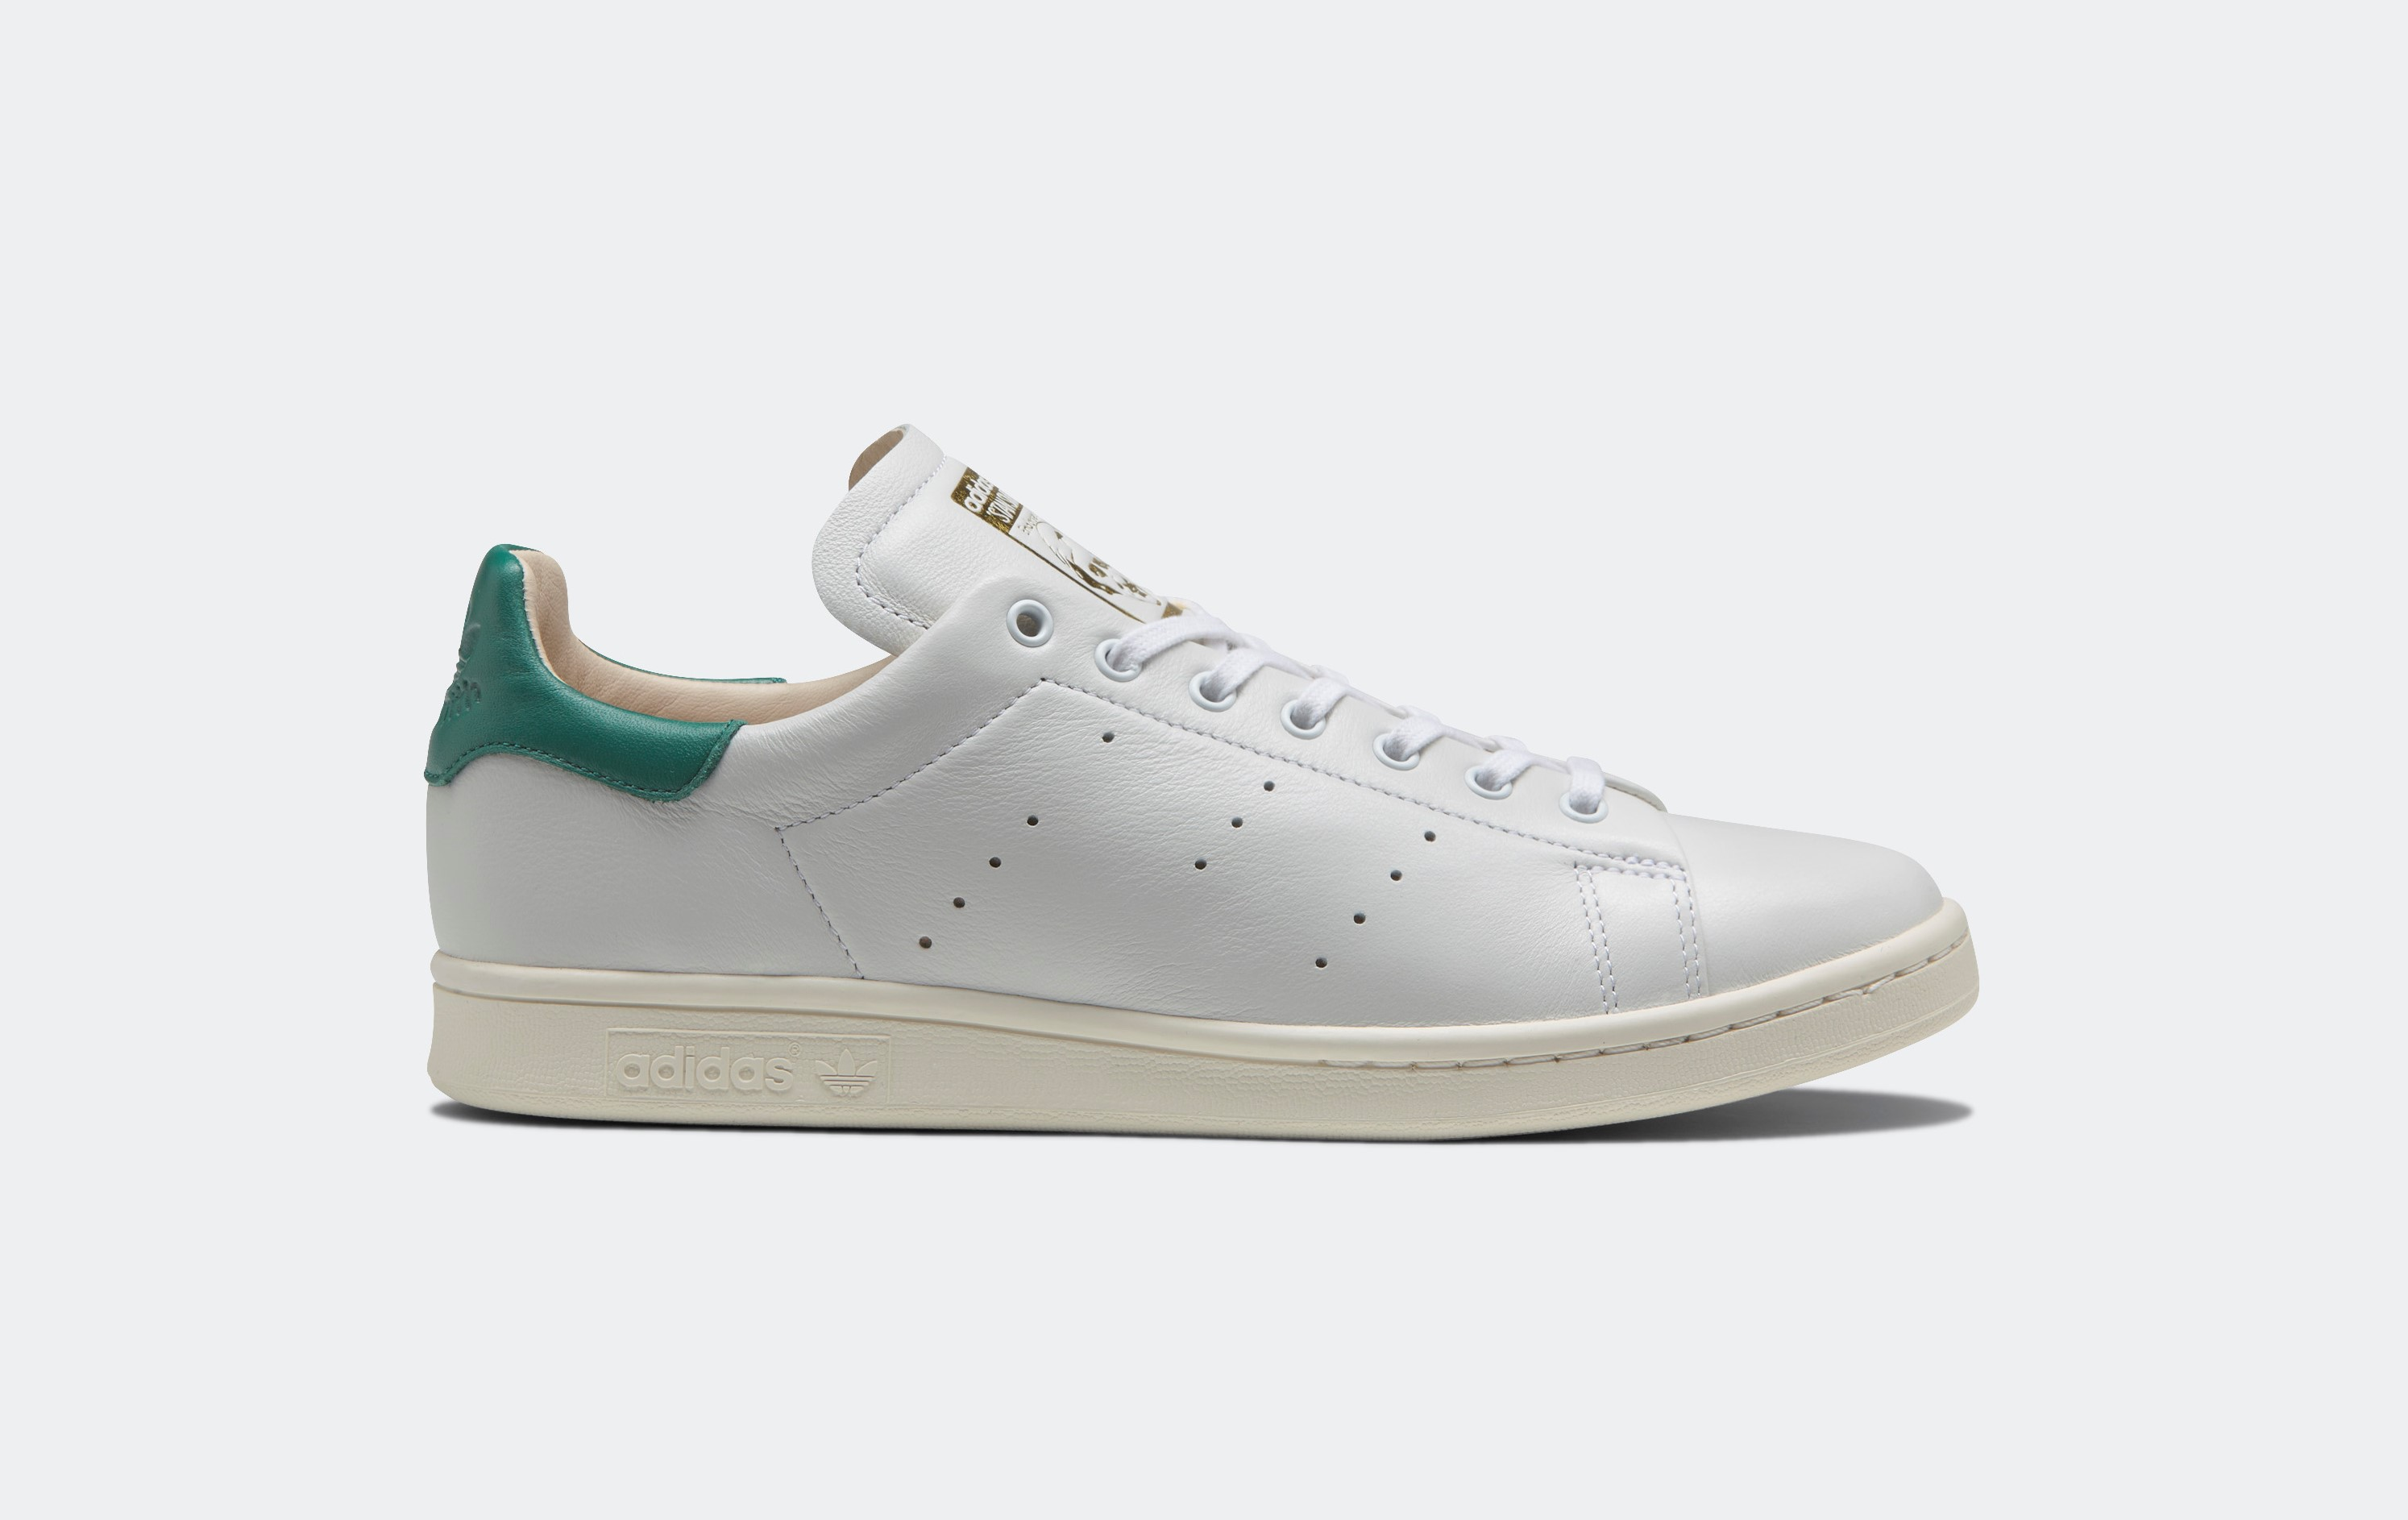 new york 7a5d6 9006a The Stan Smith Recon is adidas' Latest Premium Rebuild of ...